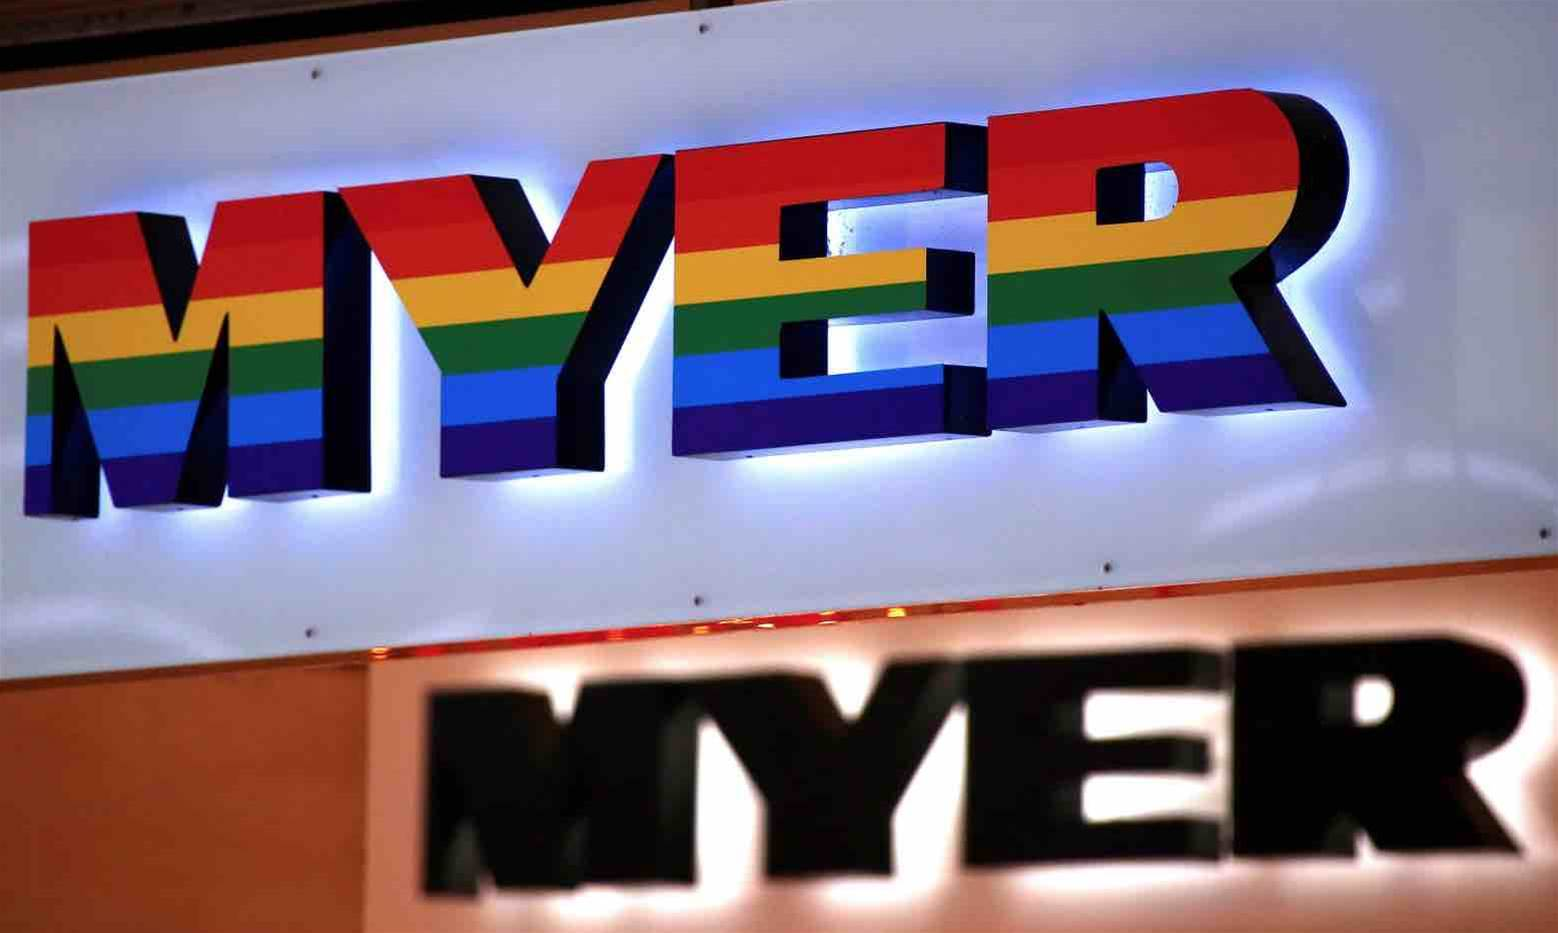 Myer to stop selling Apple products